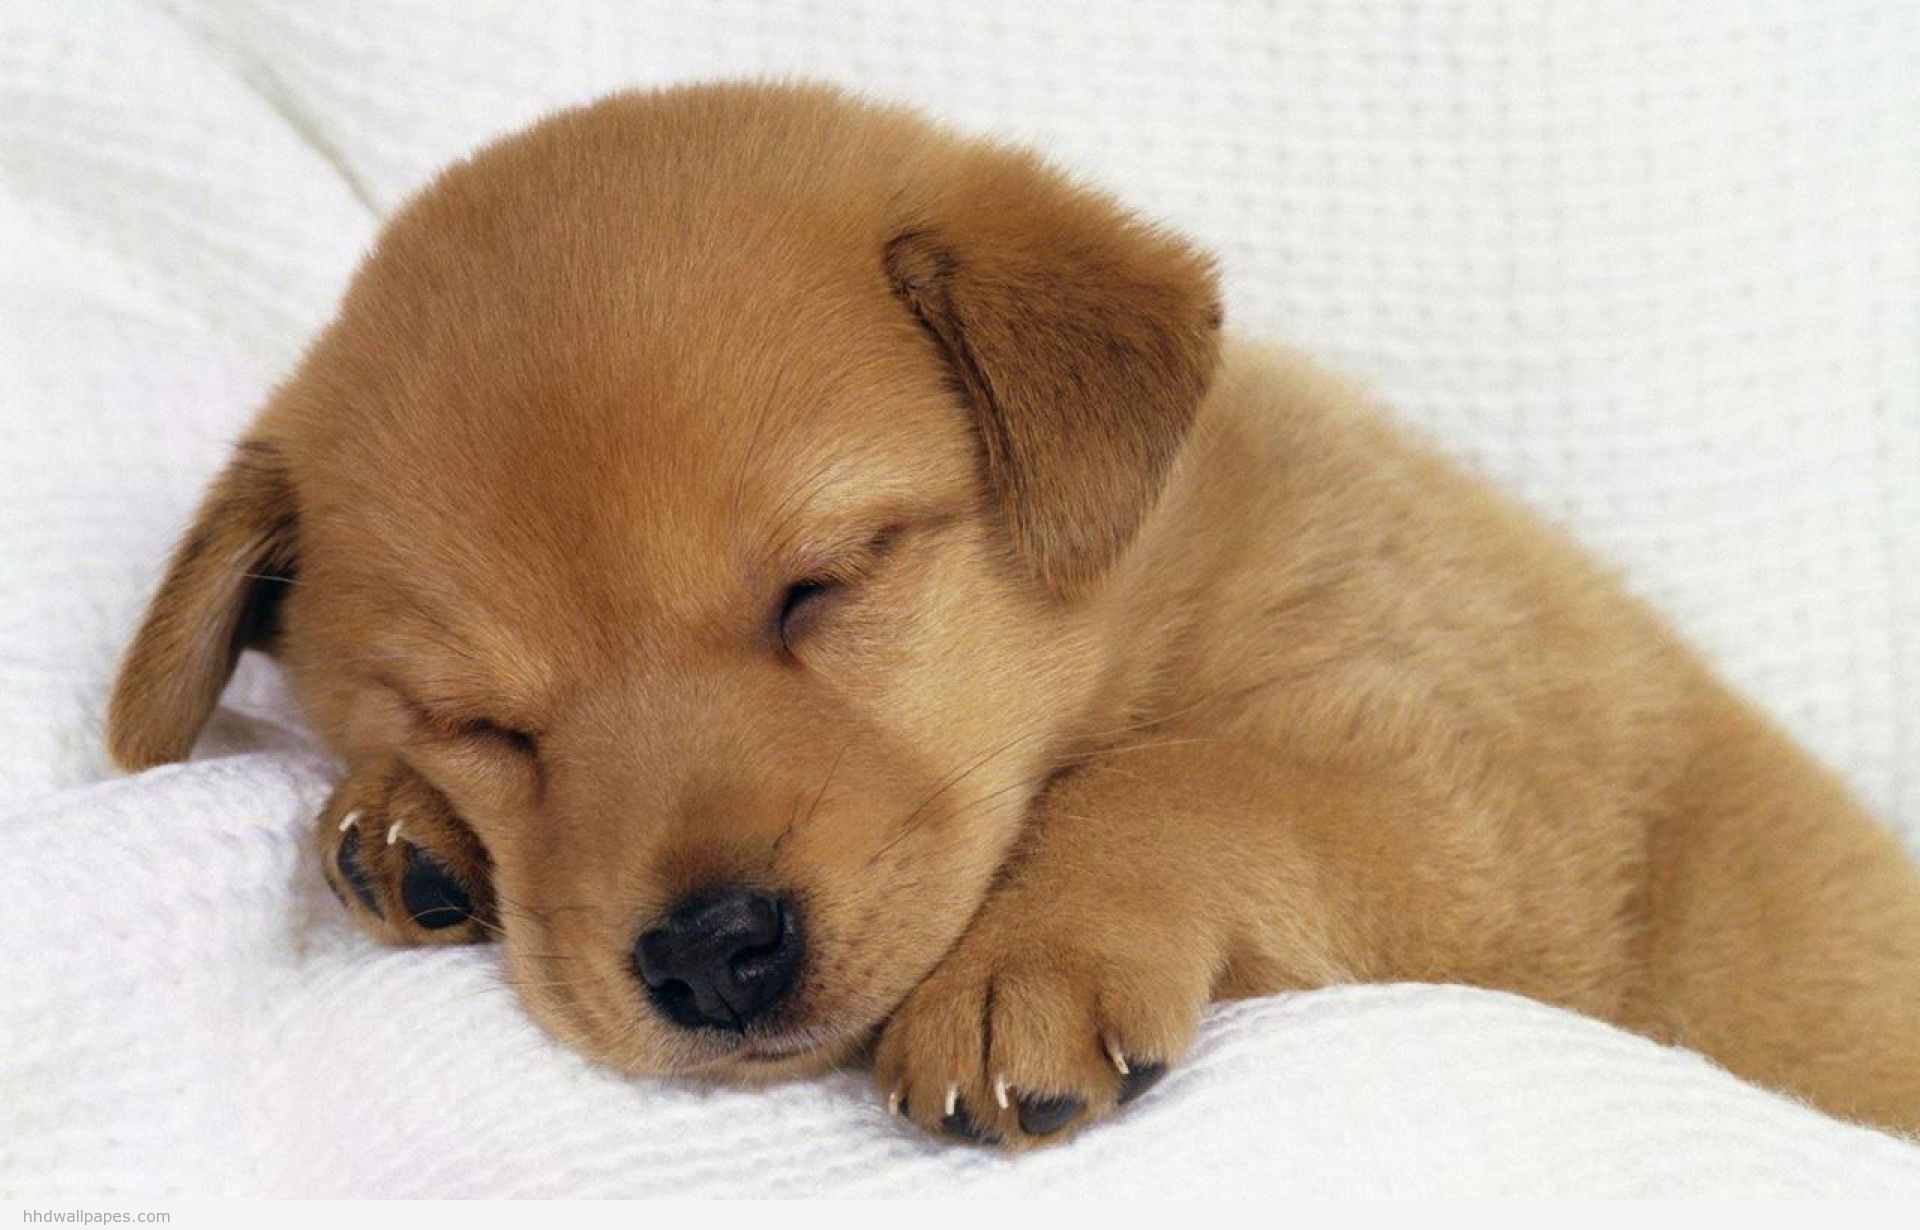 Cute Dogs And Puppies Wallpaper - WallpaperSafari Pictures Of Dogs